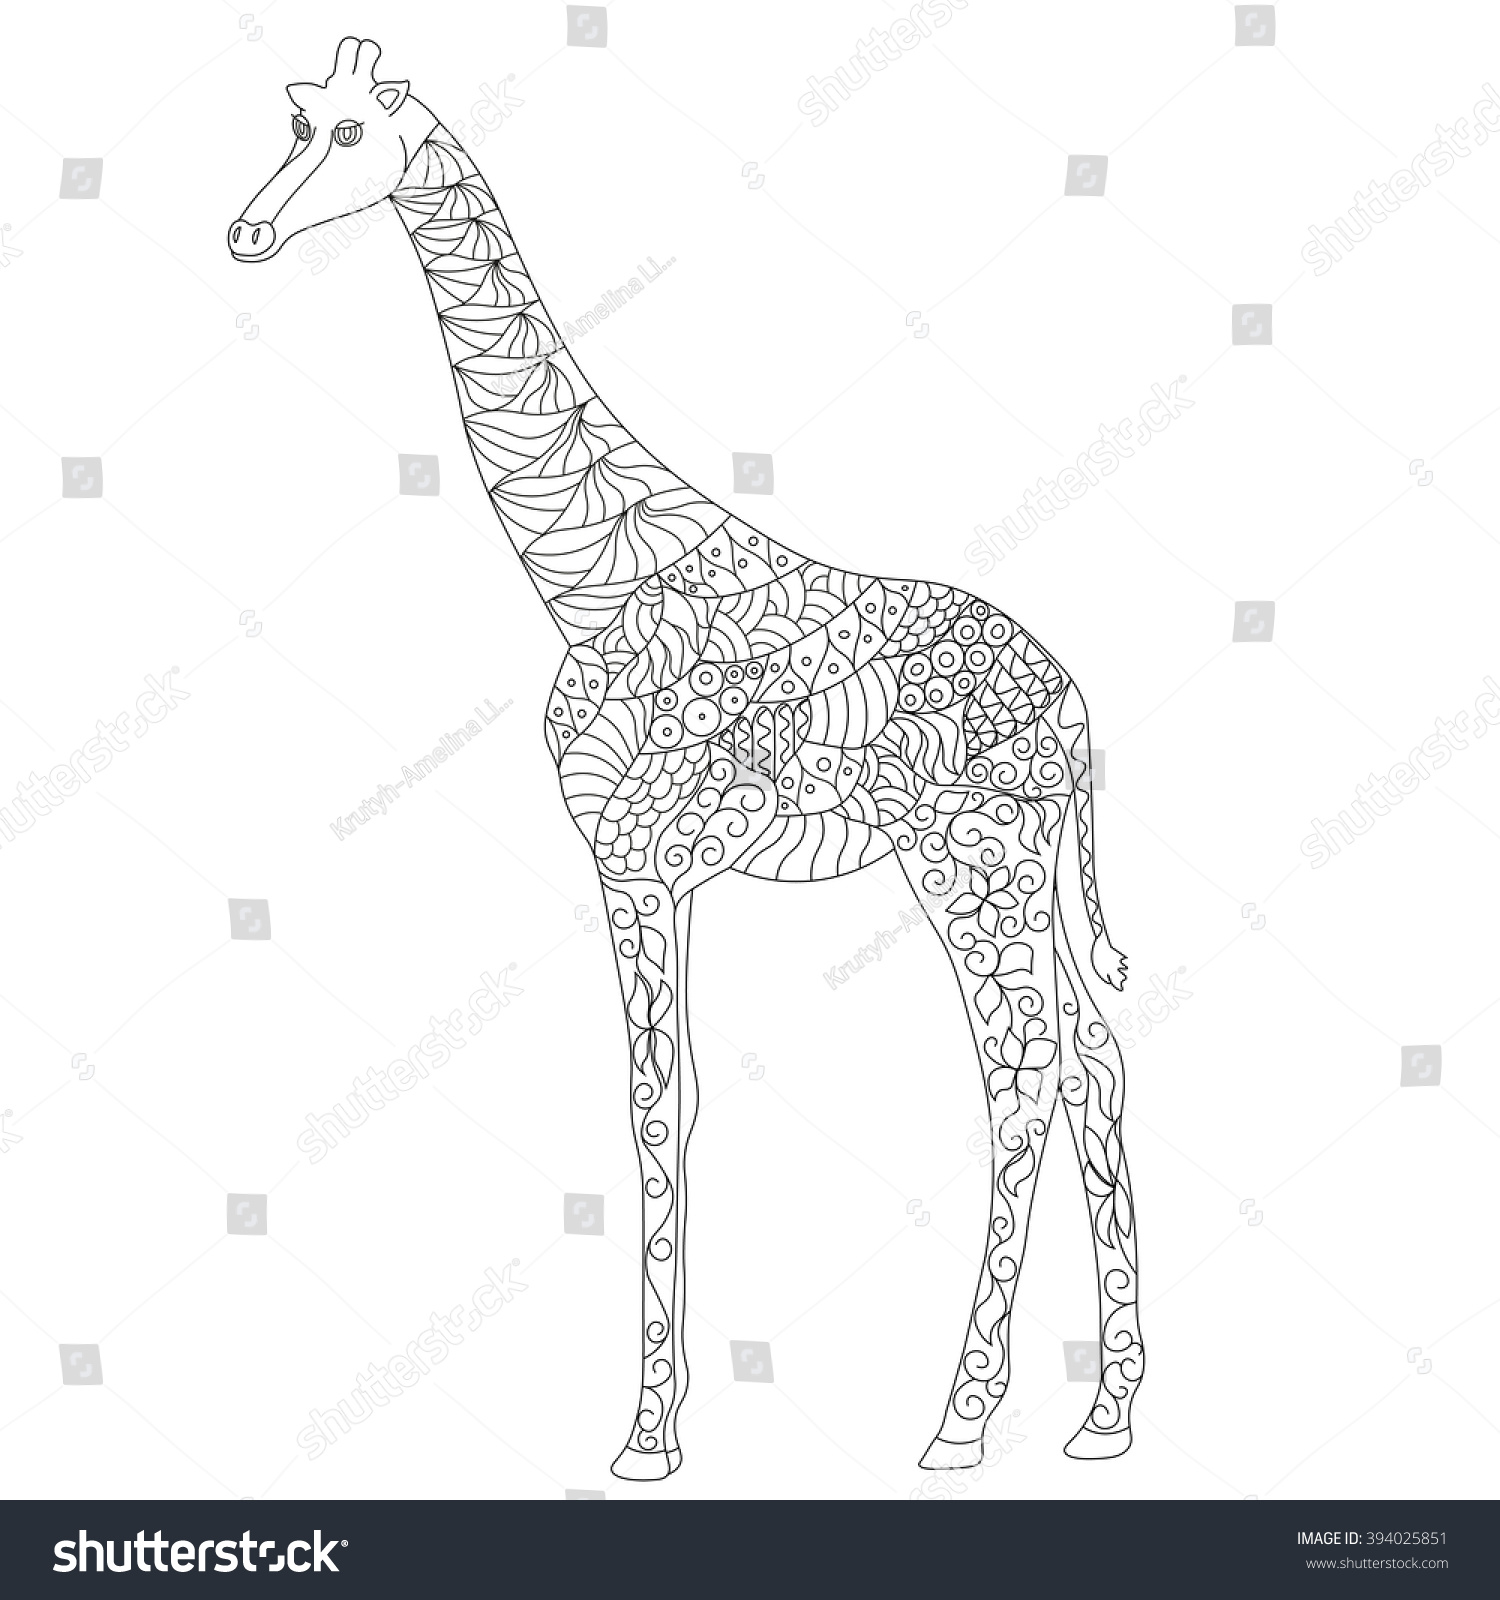 anti stress coloring page zentangle giraffe stock vector 394025851